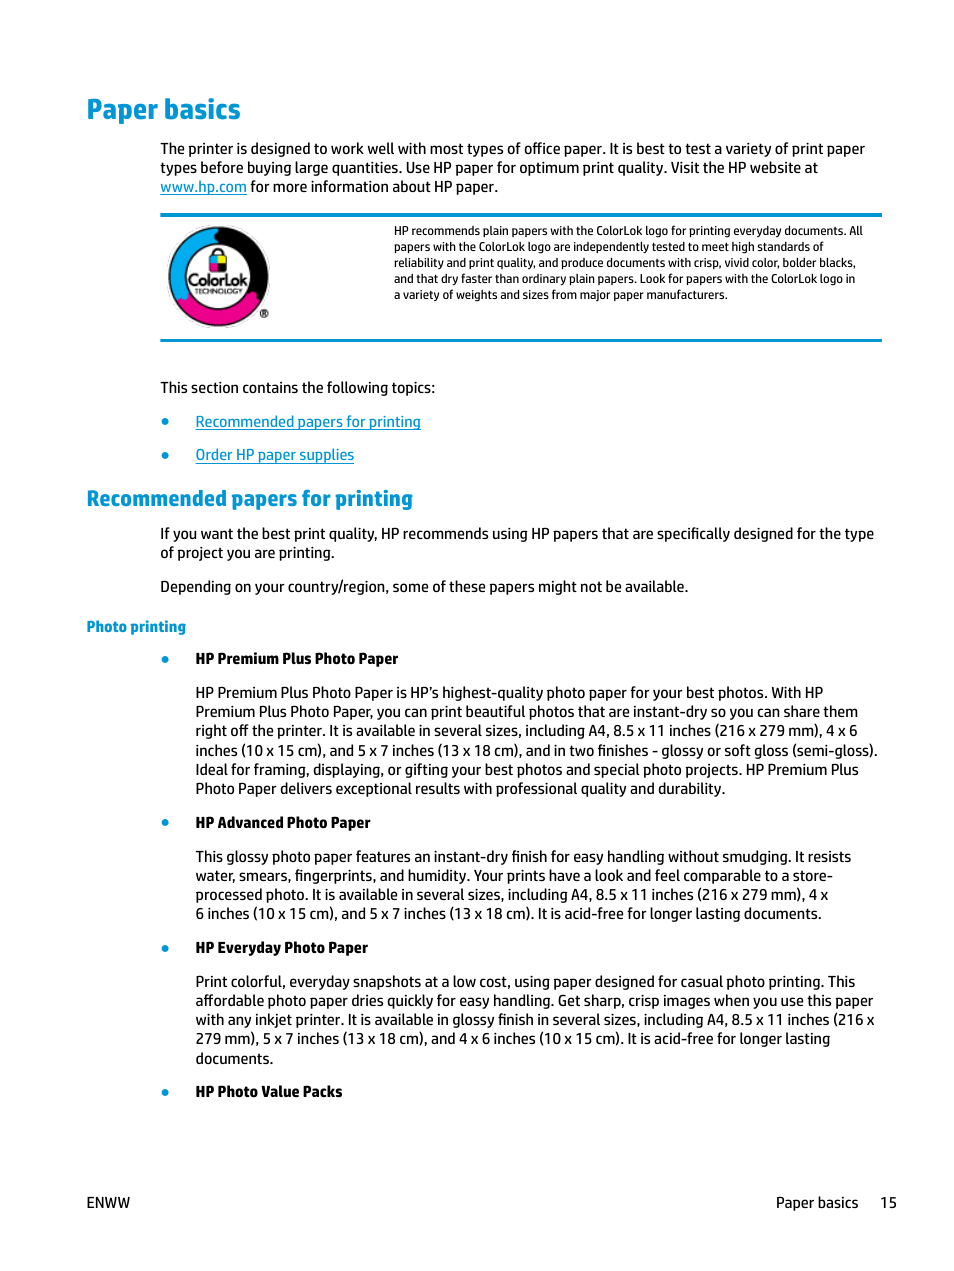 Paper basics, Recommended papers for printing | HP DeskJet ...